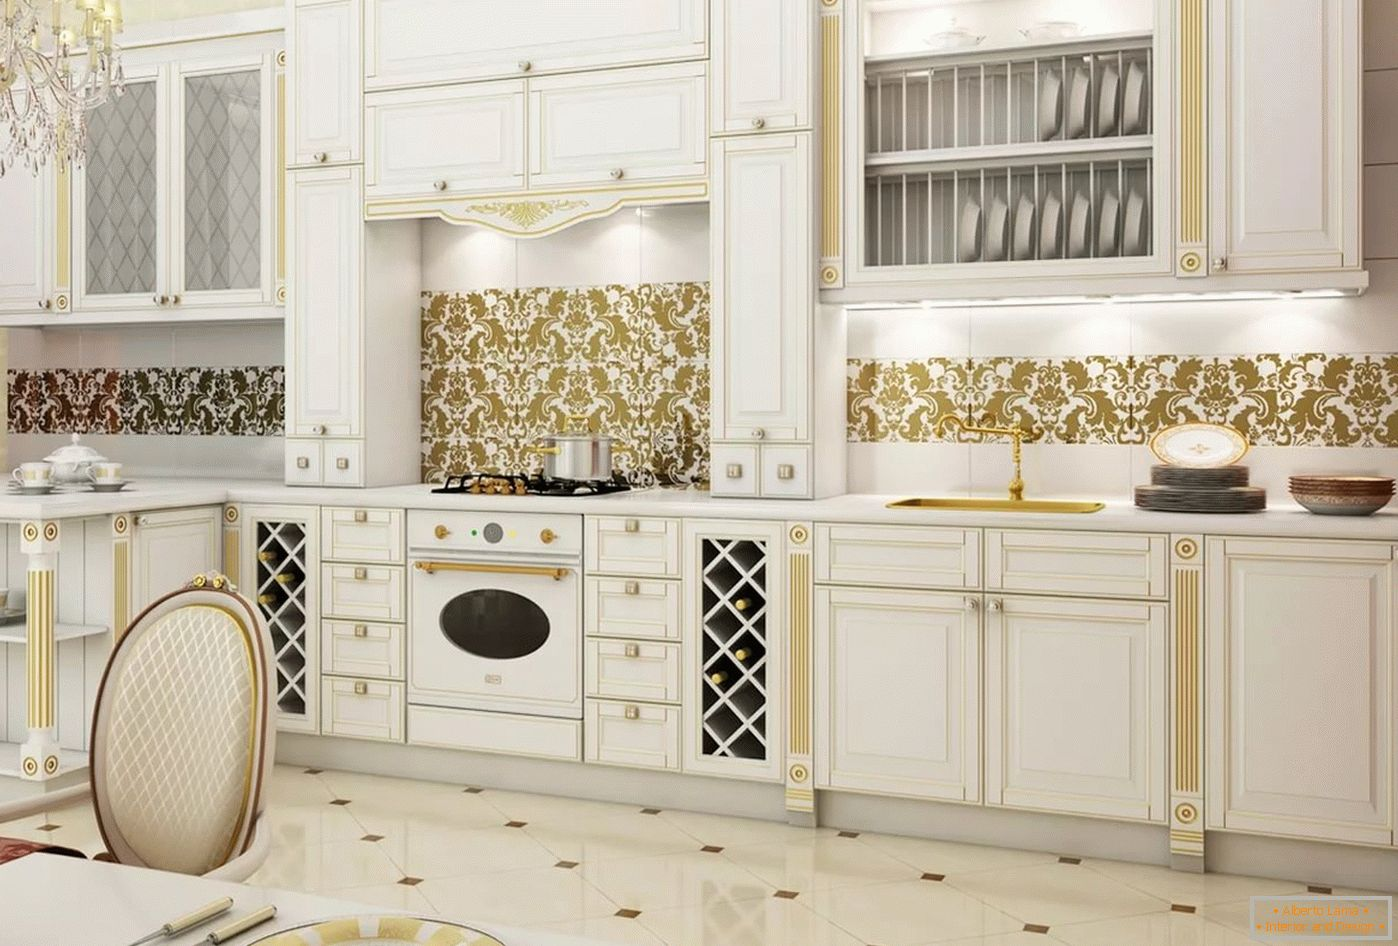 White and gold in the interior and design of the kitchen